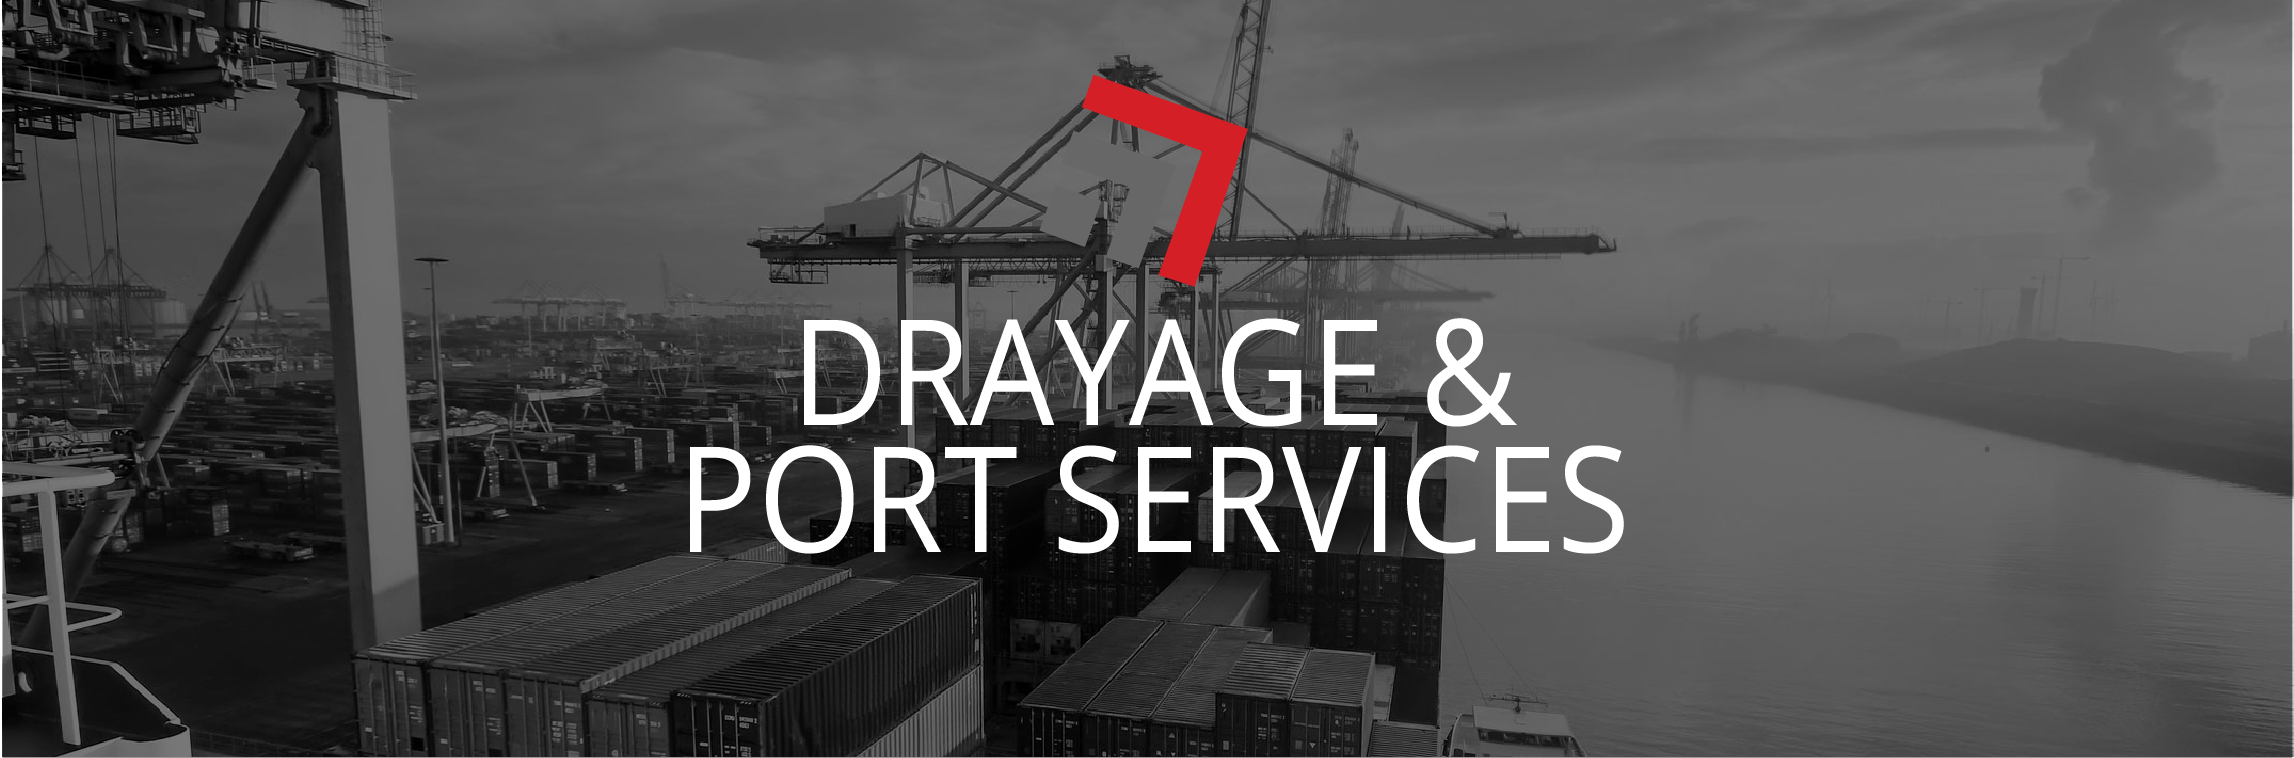 Drayage & Port Services